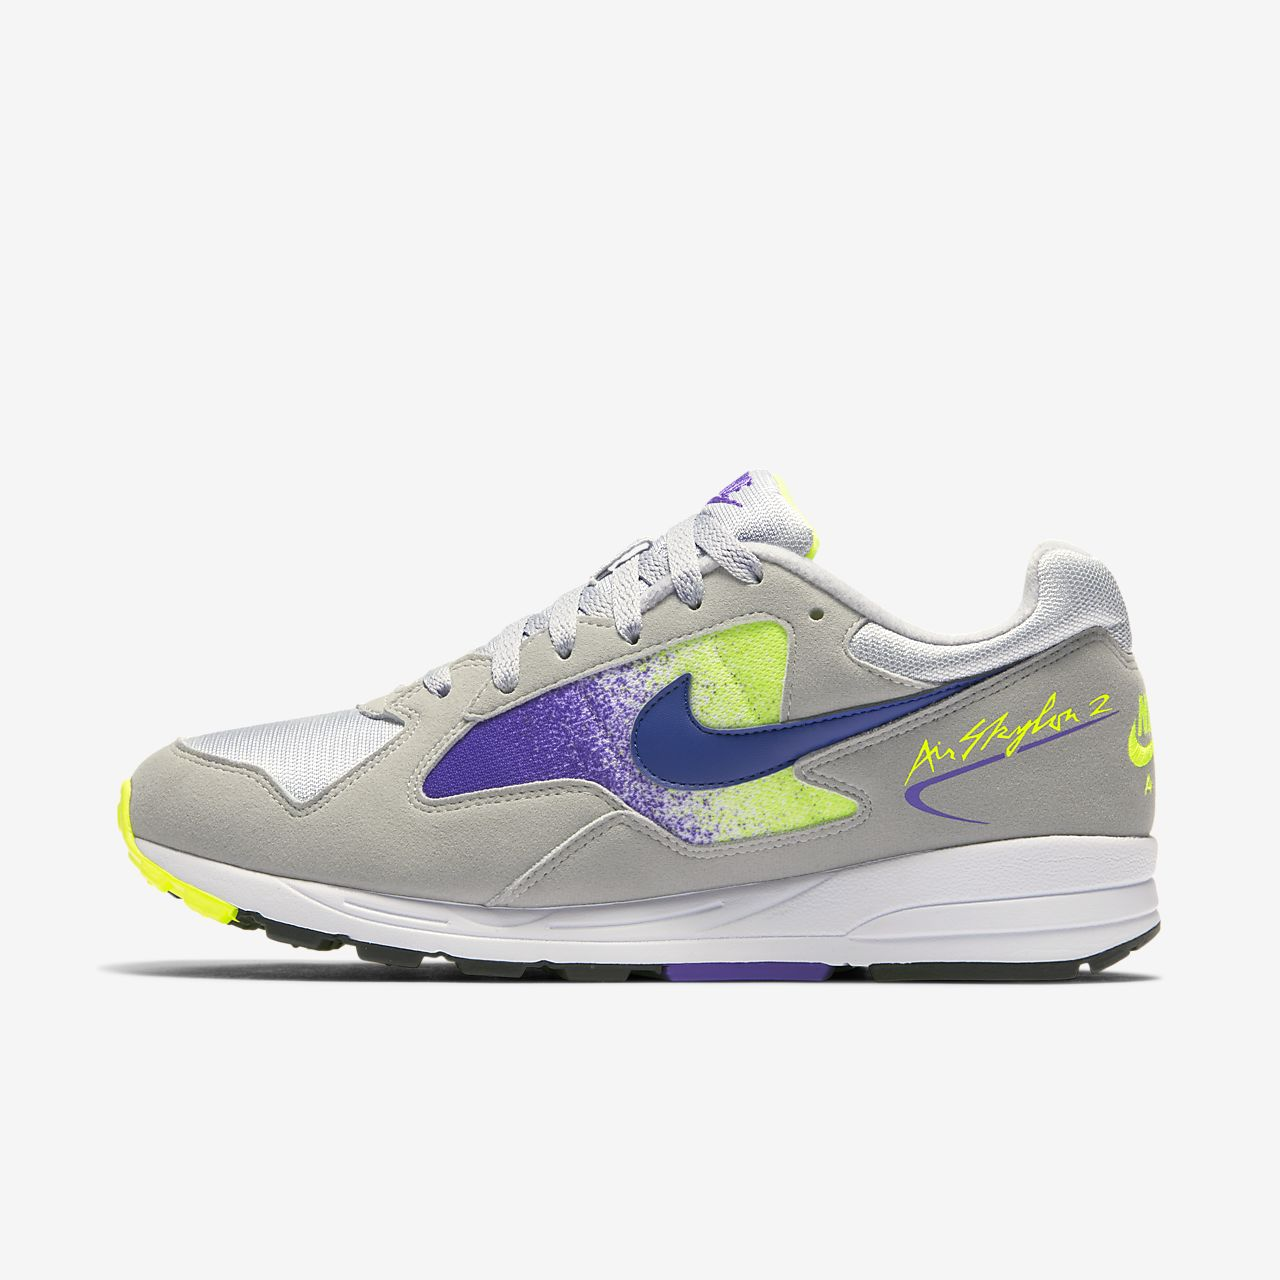 sports shoes cc3c3 91f72 Nike Air Skylon II